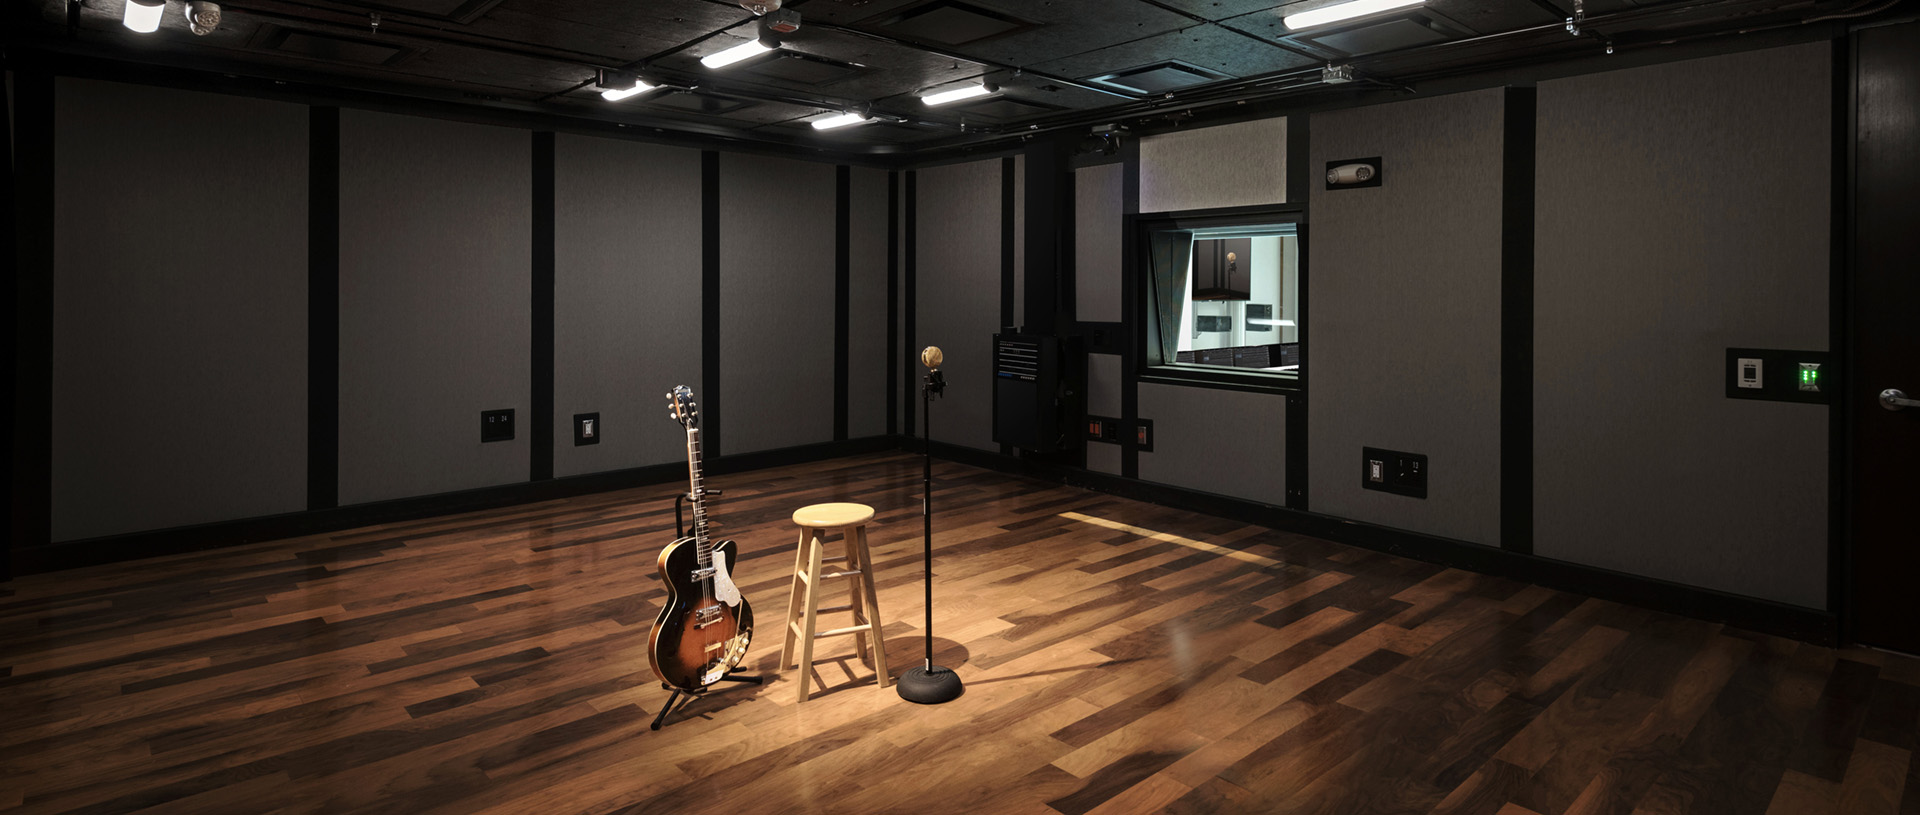 Sensational Fully Equipped Vibration Isolated Recording Studio Sneaky Big Largest Home Design Picture Inspirations Pitcheantrous